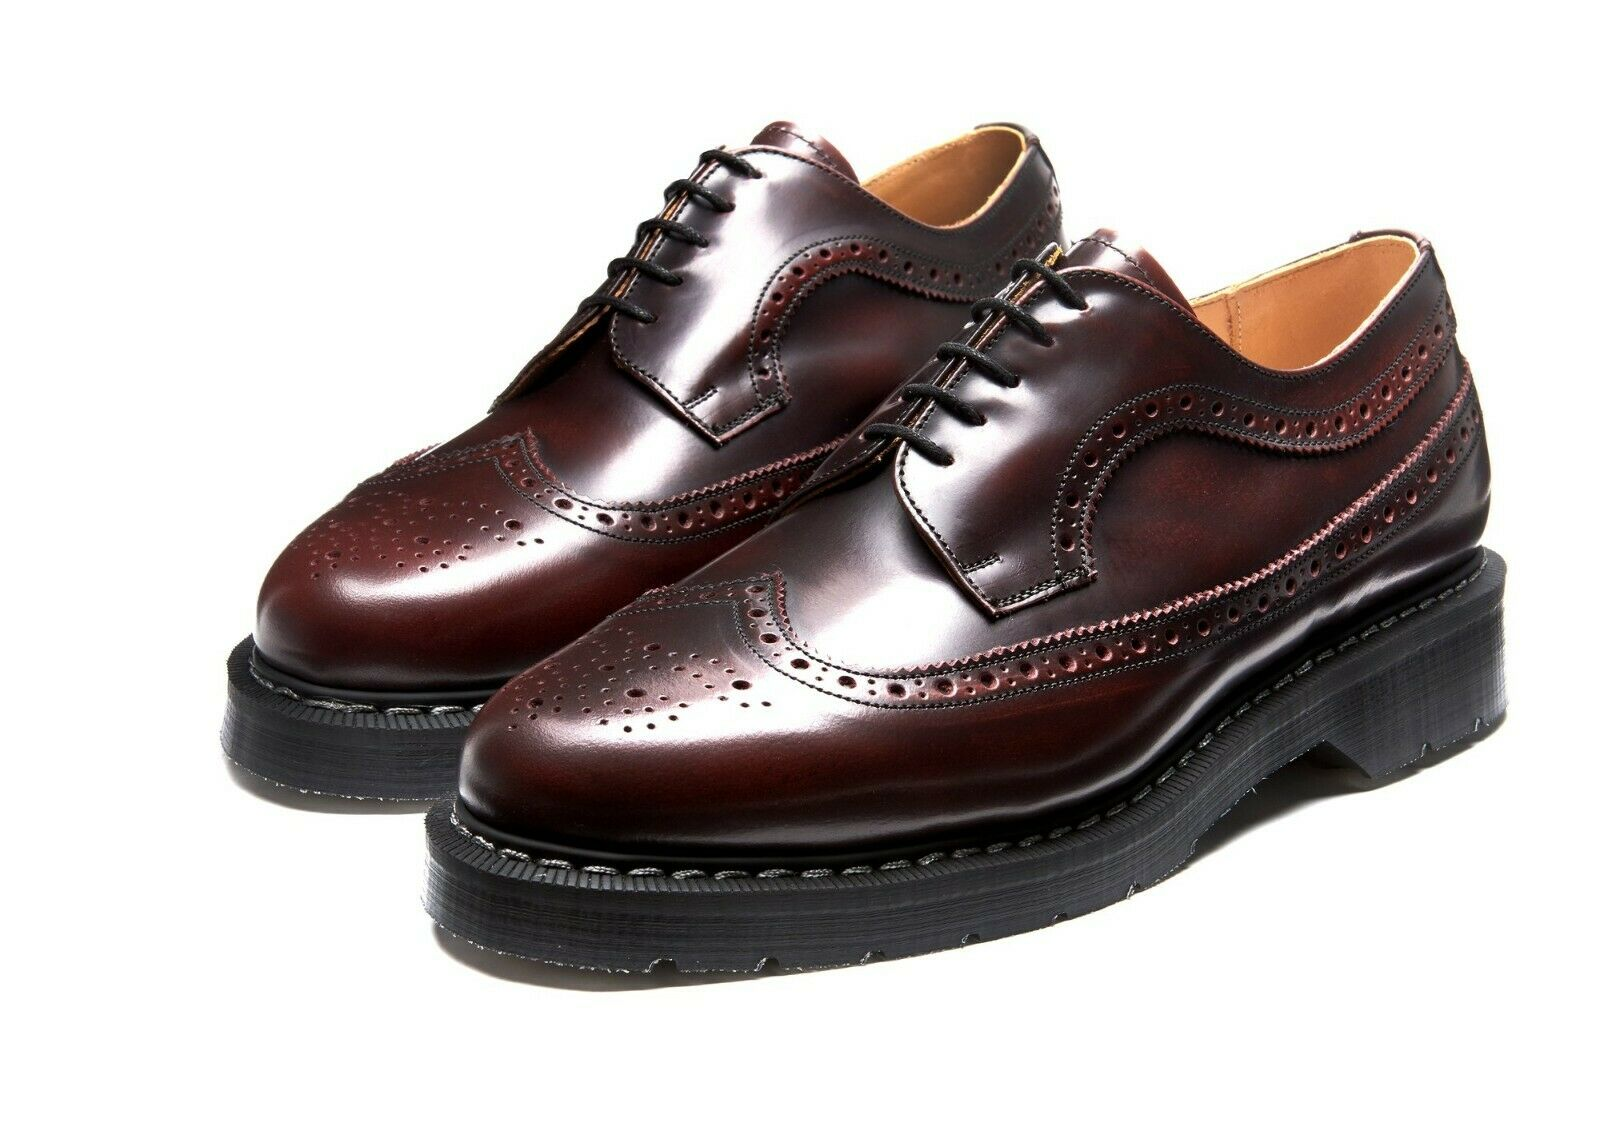 Solovair Burgundy Rub-off 5 Eyelet Hi Shine American Brogue Shoe Made In England